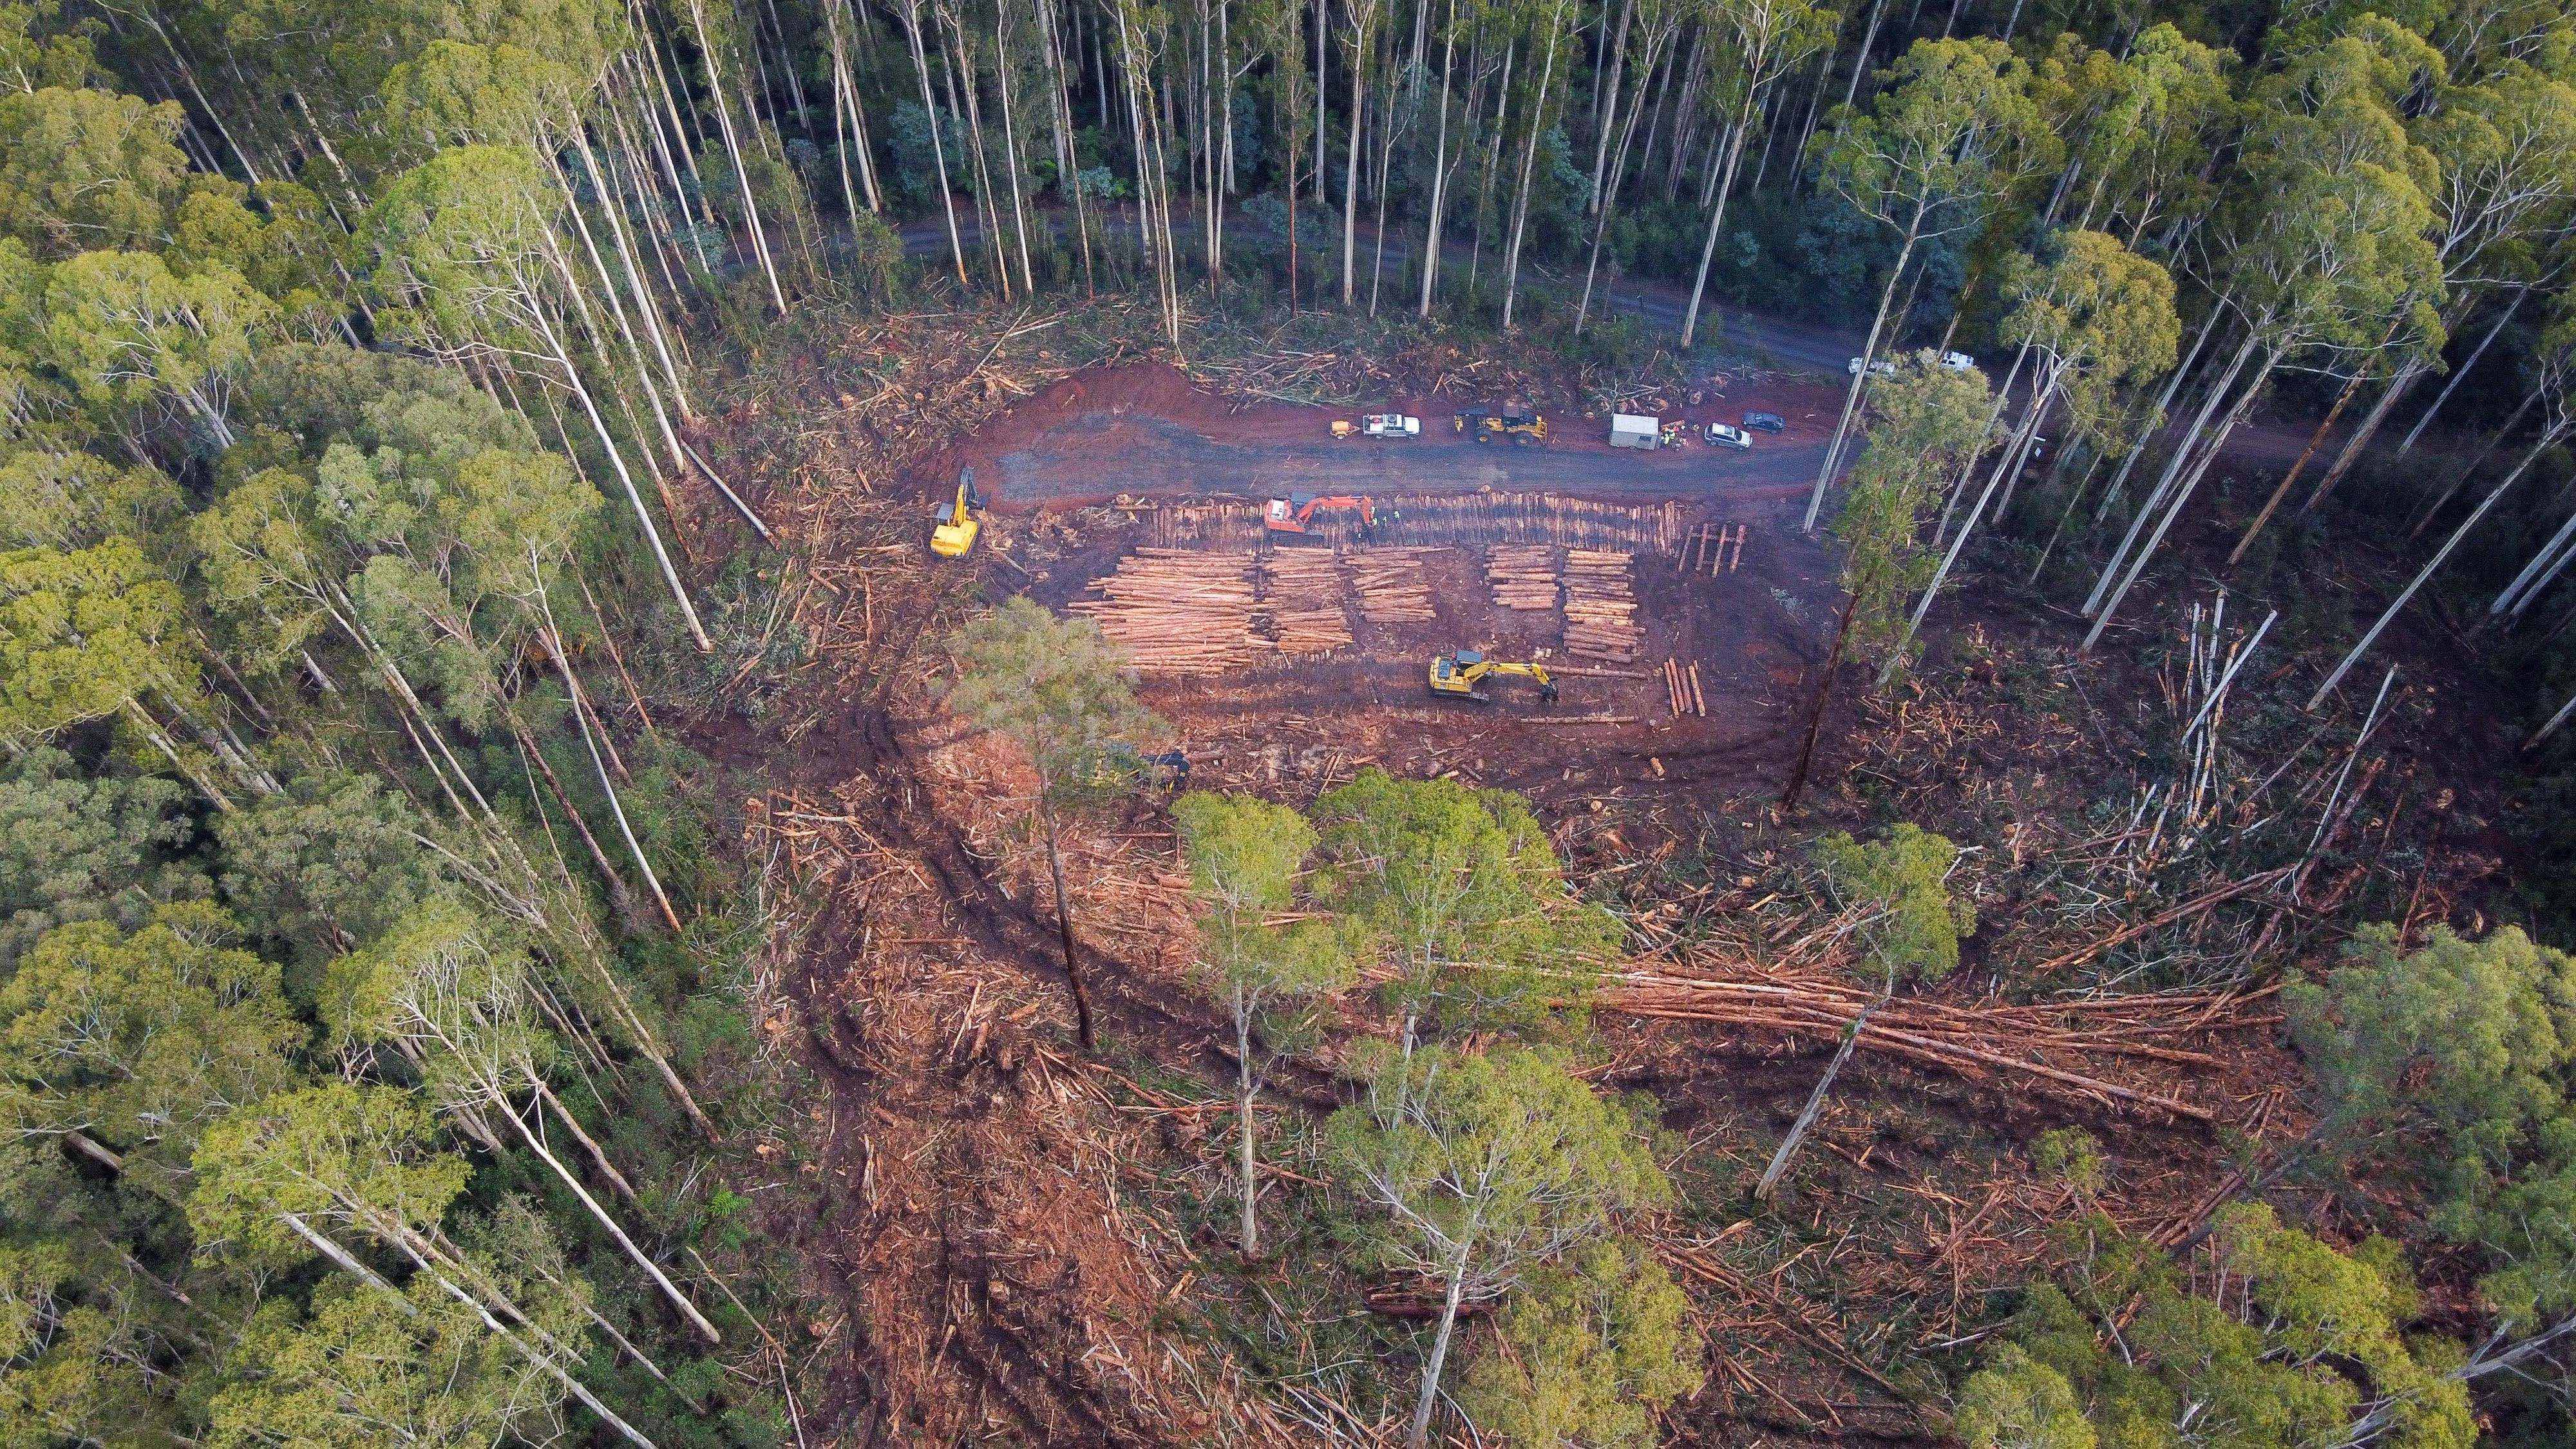 State logging of endangered species habitats illegal, court rules